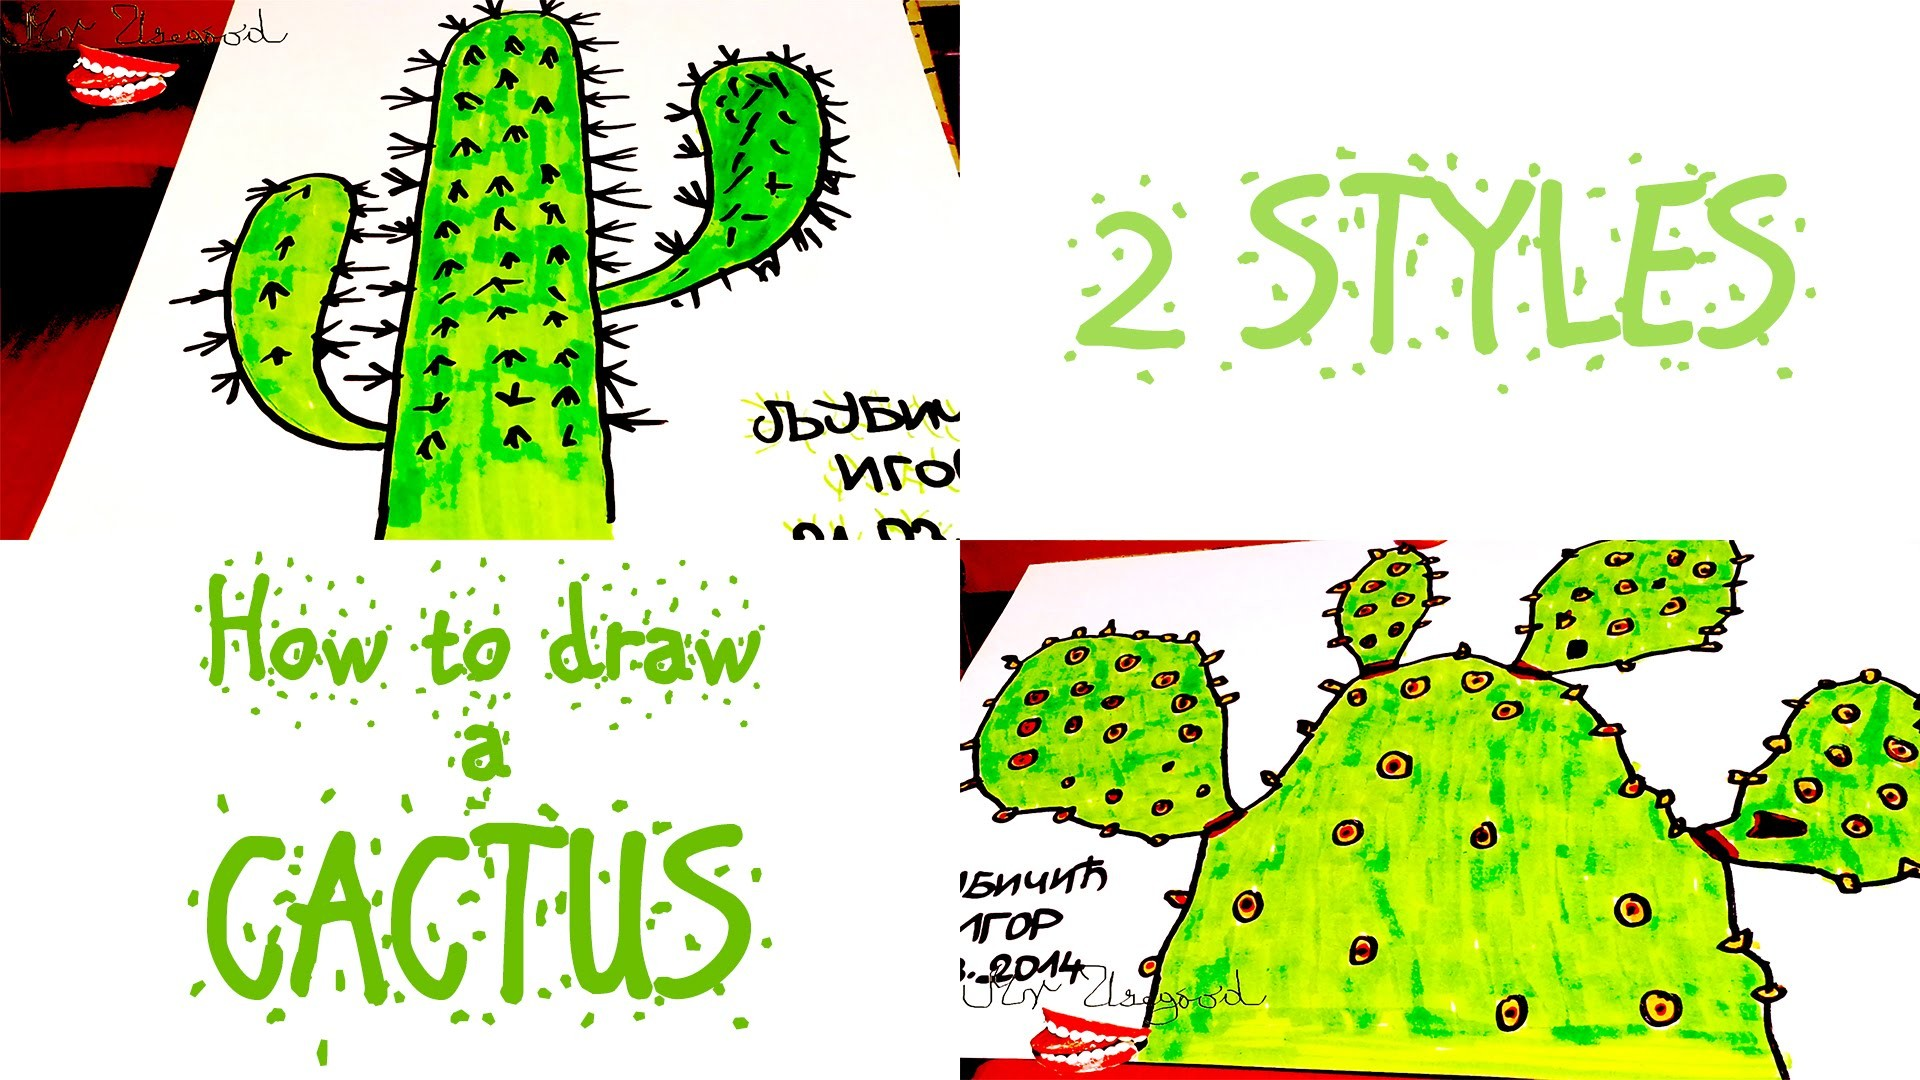 Diy How To Draw A Cactus Step By Step Easy 2 Simple Cartoon Cactus